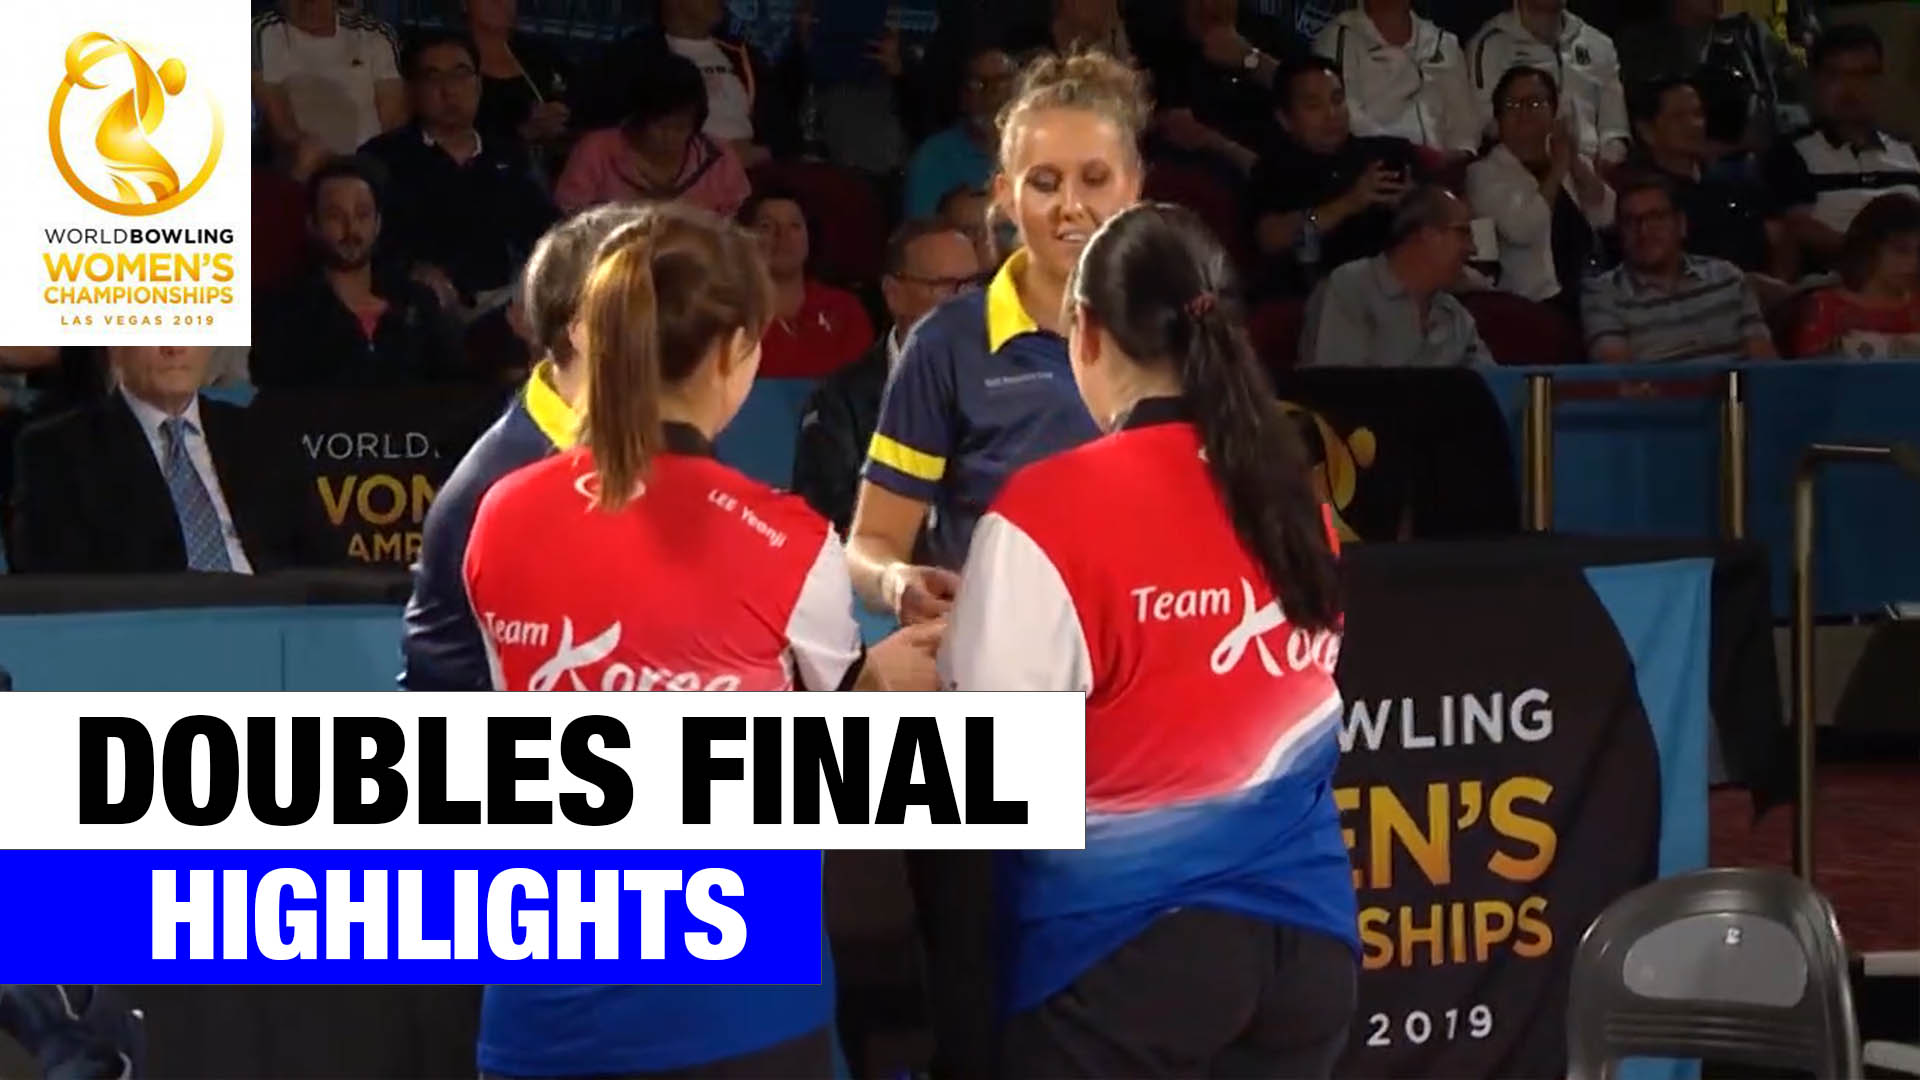 Doubles Final Highlights – World Bowling Women's Championships 2019